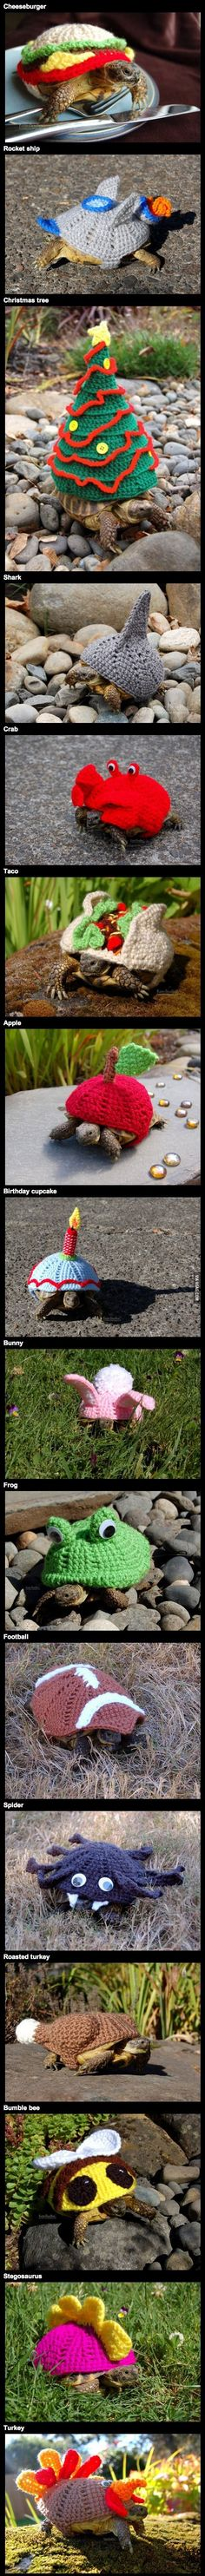 Tortoises sporting a variety of magnificent crocheted cozies, from cheeseburgers to dinosaurs